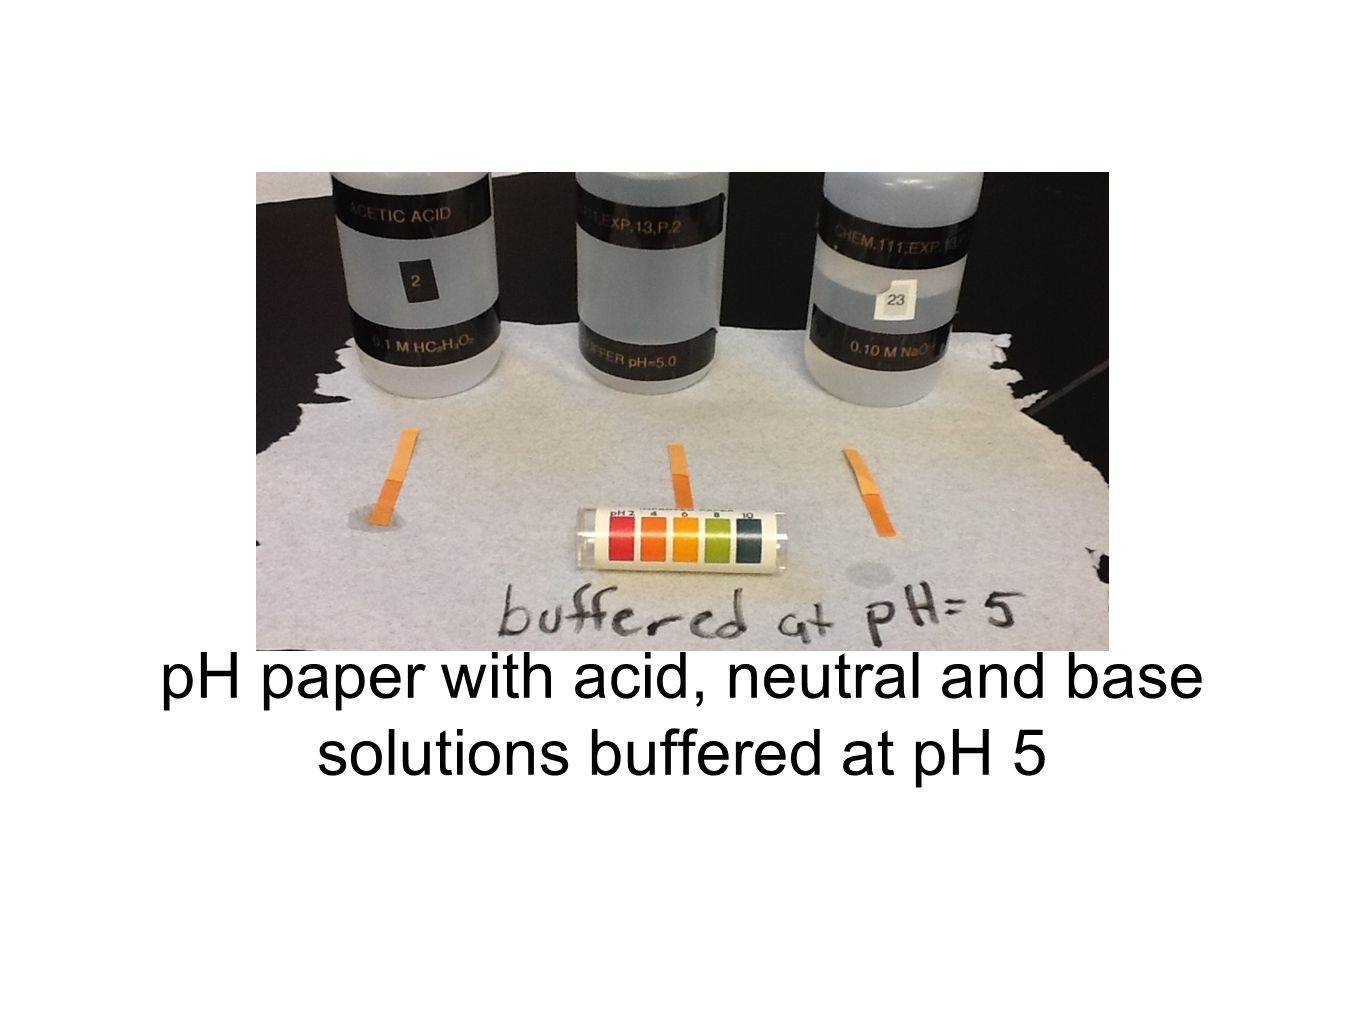 pH paper with acid, neutral and base solutions buffered at pH 5